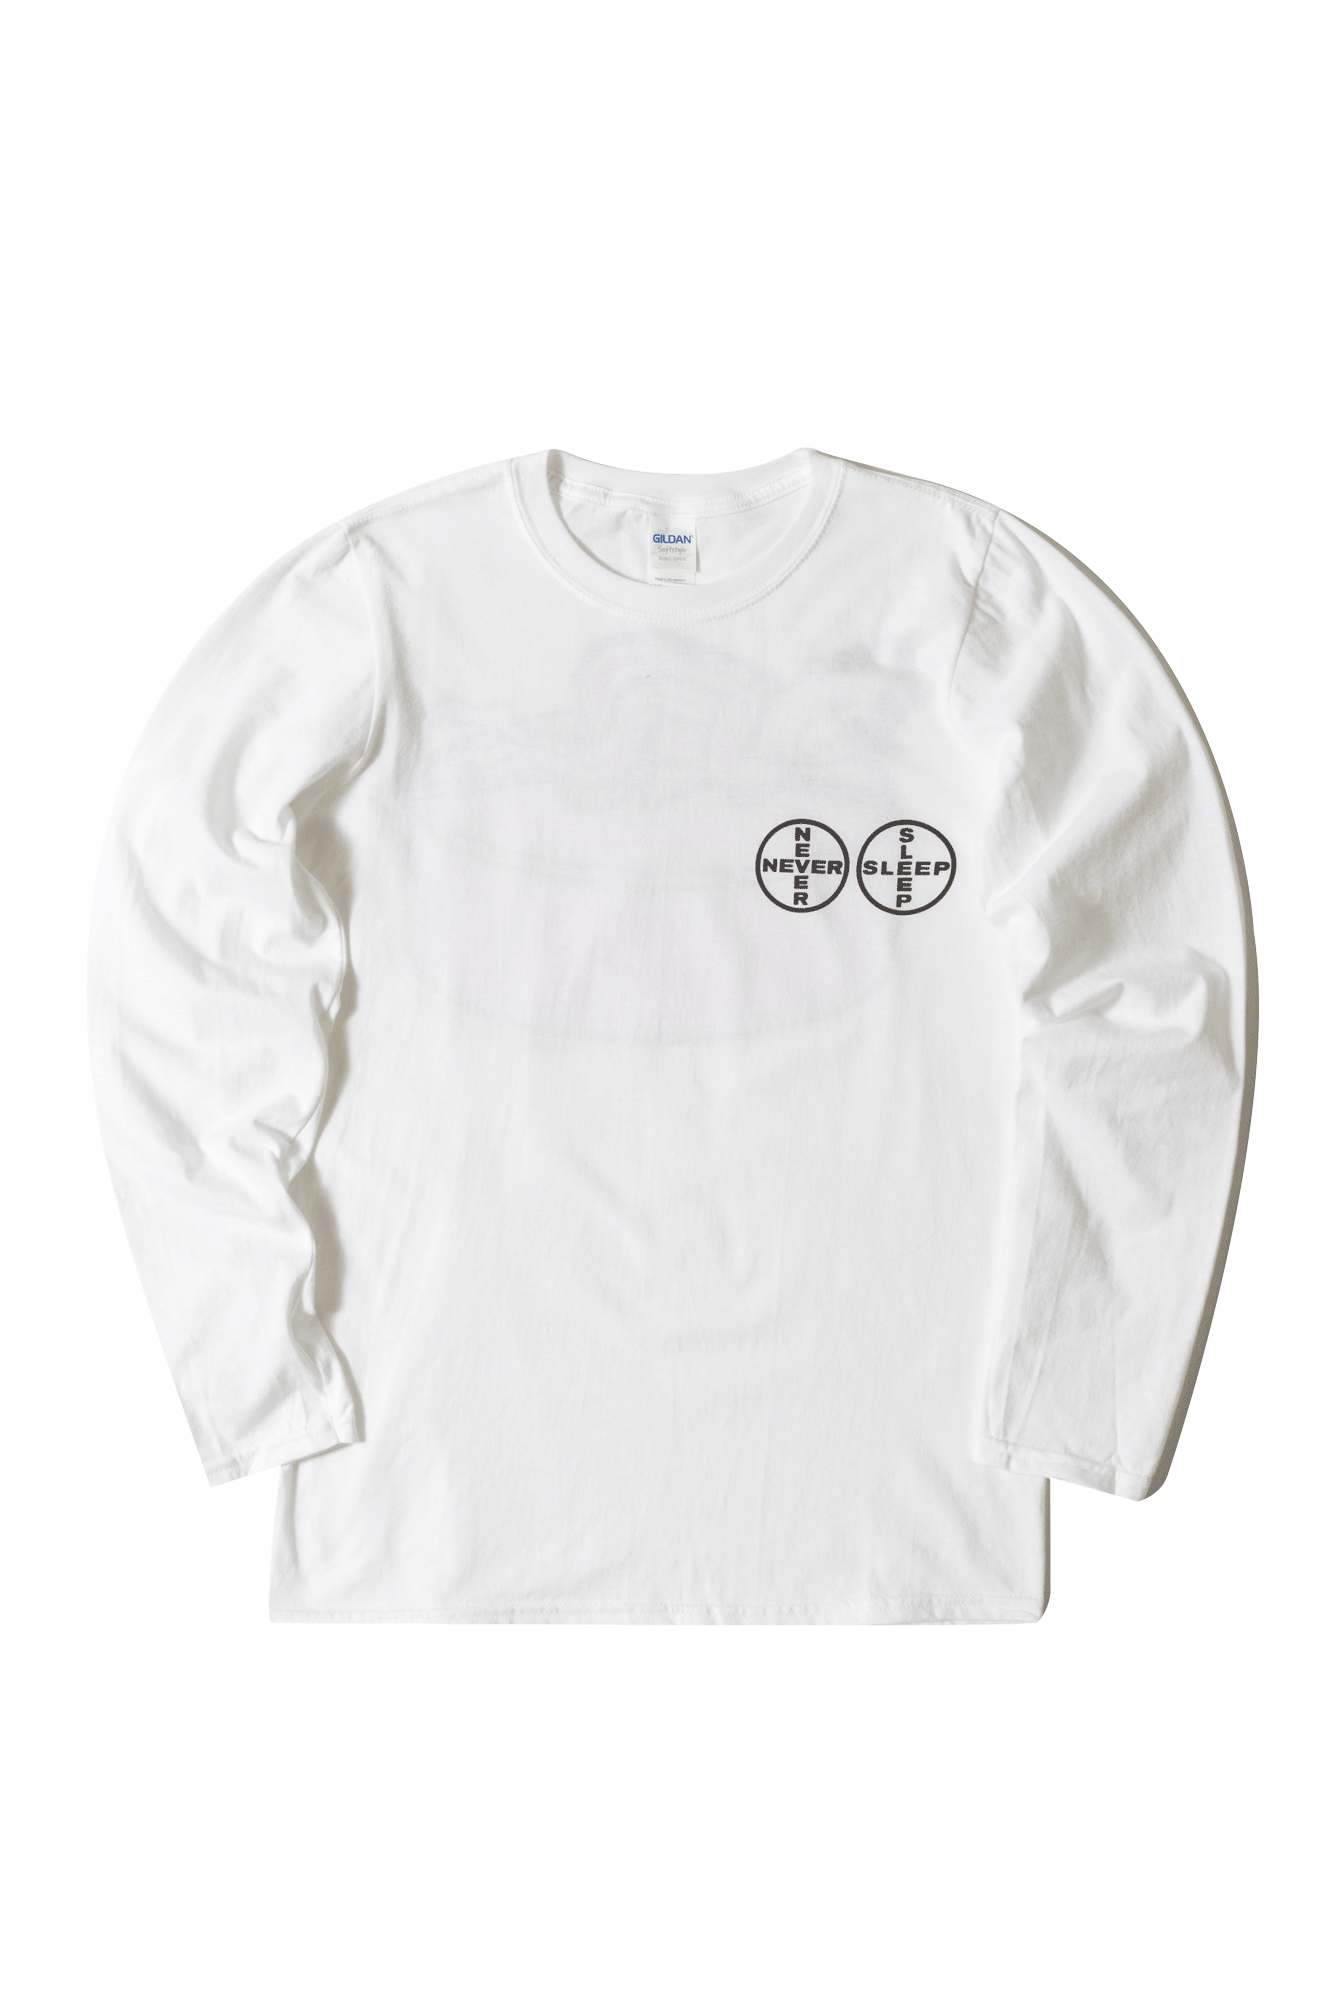 Gabber Eleganza Long sleeve T-Shirts Never Sleep Pill Long Sleeve White NVRSLPILL#000#WHT#S - One Block Down